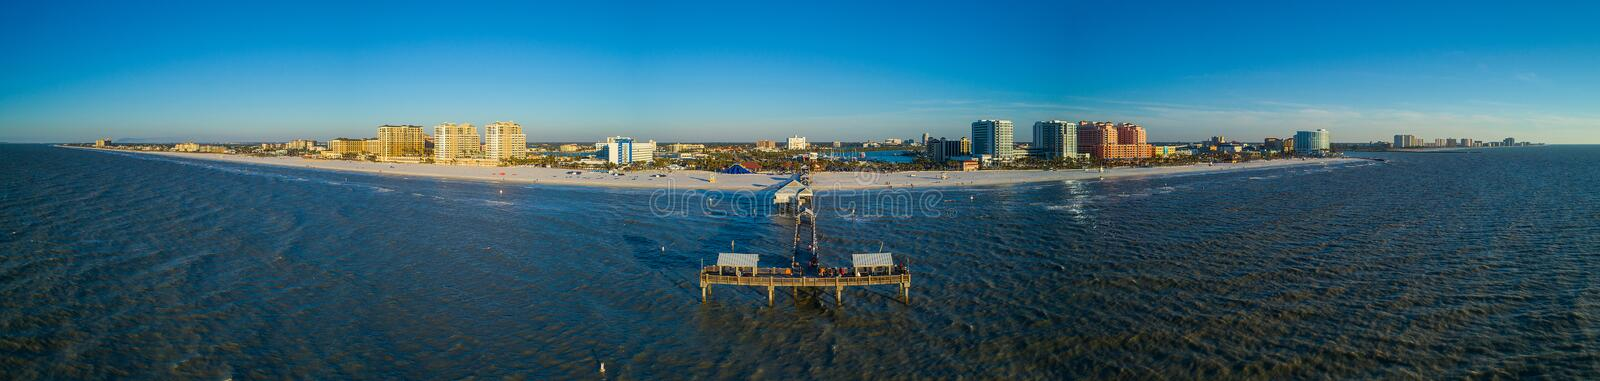 Aerial panorama Clearwater Beach Pier Florida. Drone panorama Clearwater Beach Florida stitched image blue water coastline stock image